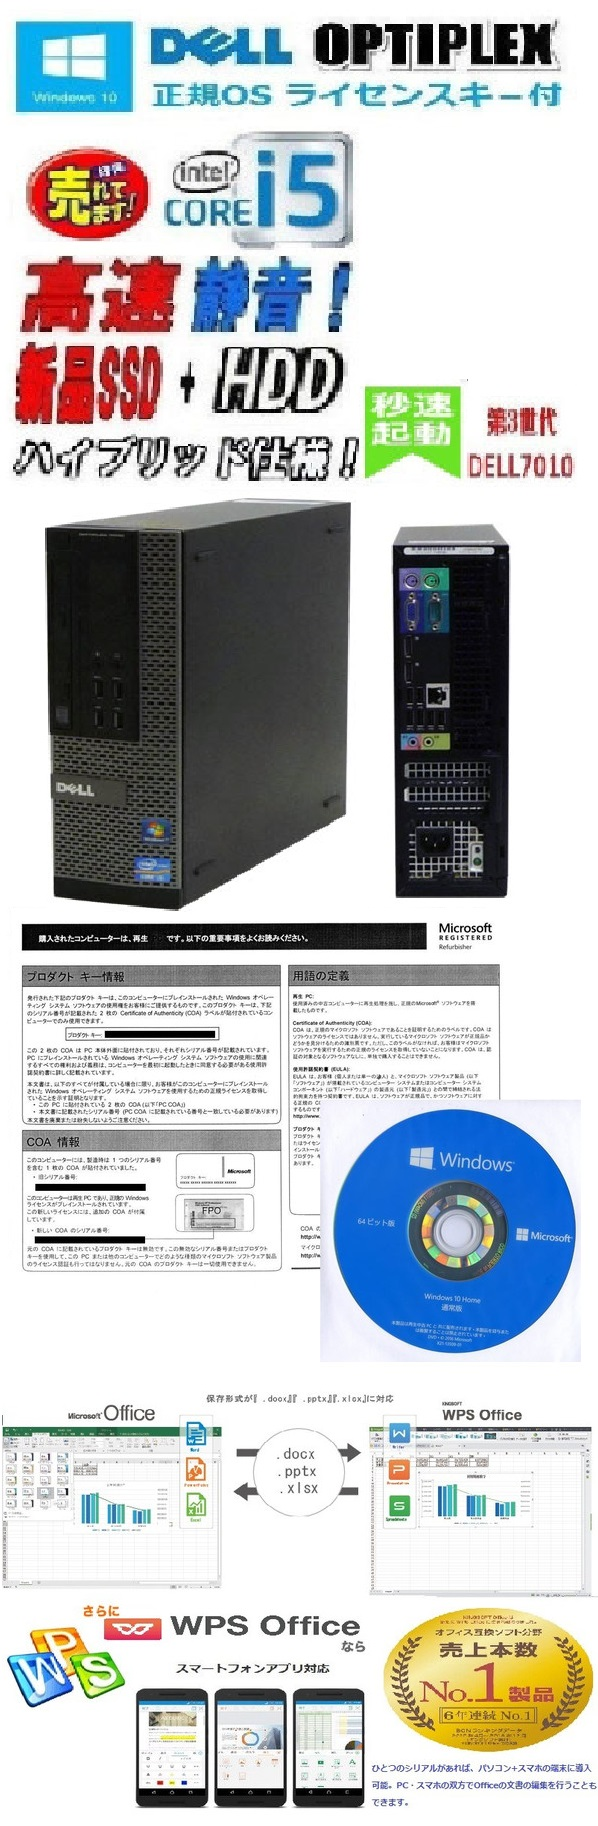 中古パソコン 正規OS Windows10 64bit/Core i5 3470(3.2GHz)/爆速新品SSD120GB+HDD250GB/メモリ4GB/USB3.0/DVDマルチ/OFFICE/DELL 7010SF/Kingsoft_WPS_Office/0171A